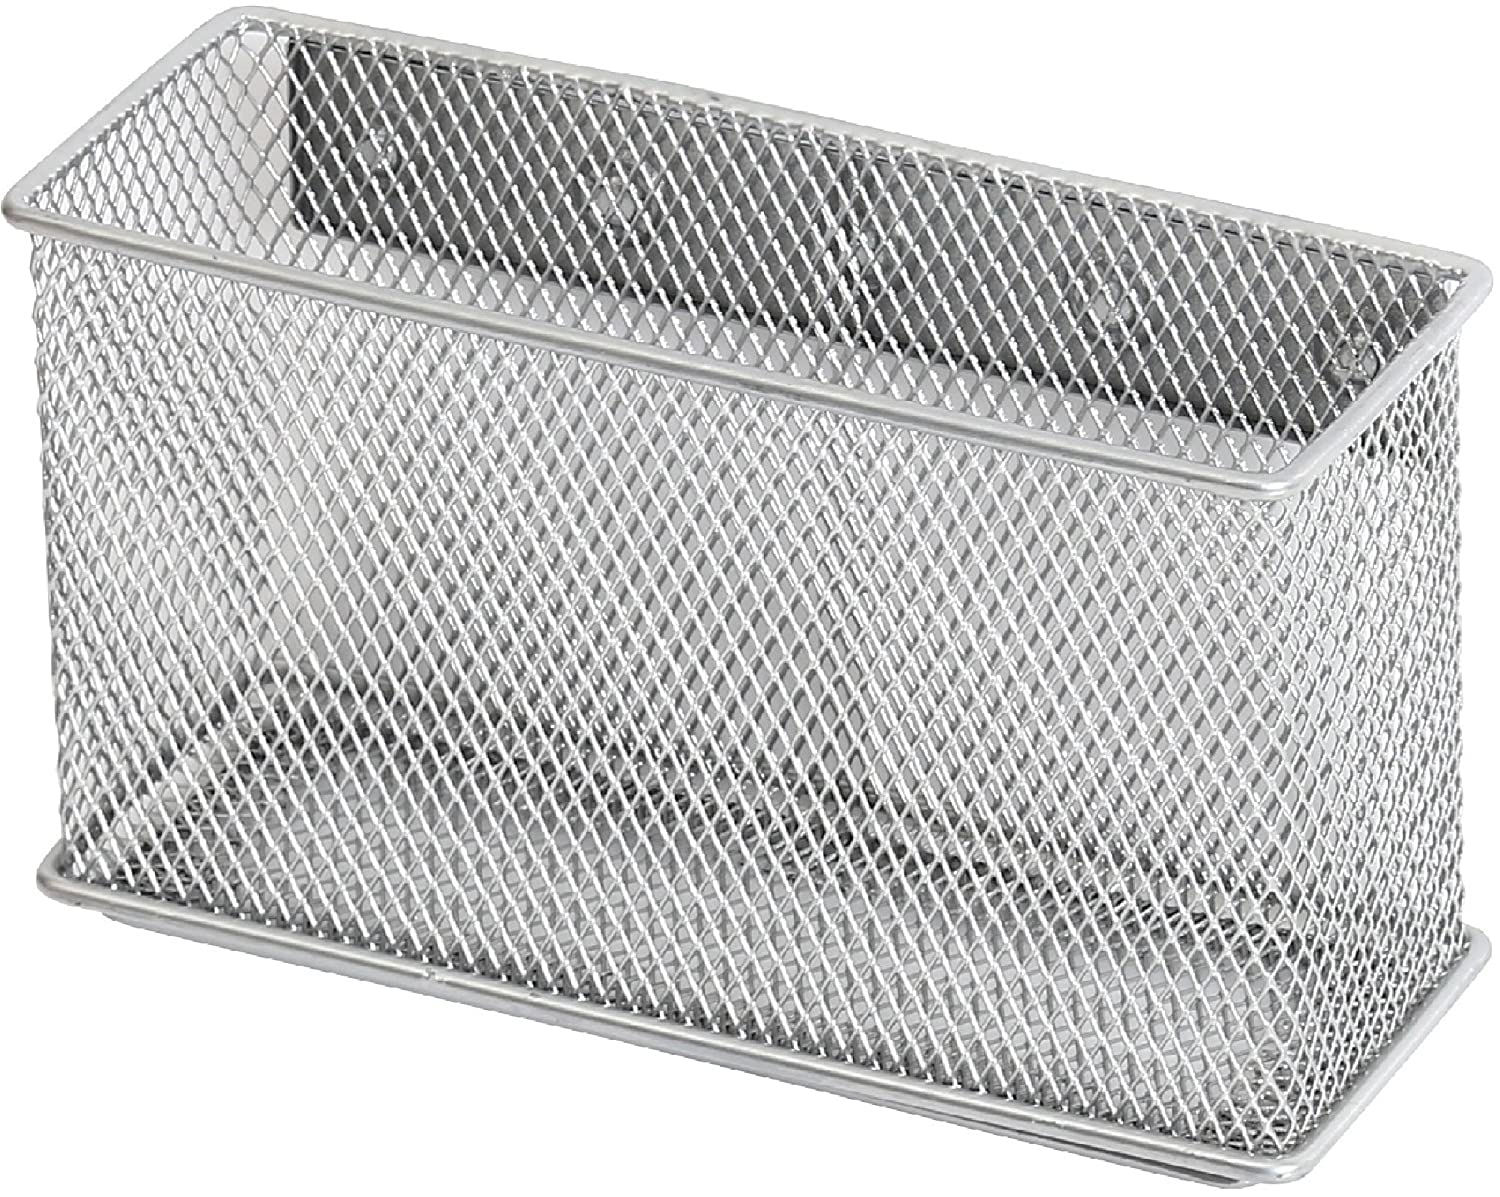 Amazon.com: Ybmhome Wire Mesh Magnetic Storage Basket, Container, Desk  Tray, Office Supply Accessory Organizer Silver For Refrigerator/Microwave  Oven Or ...